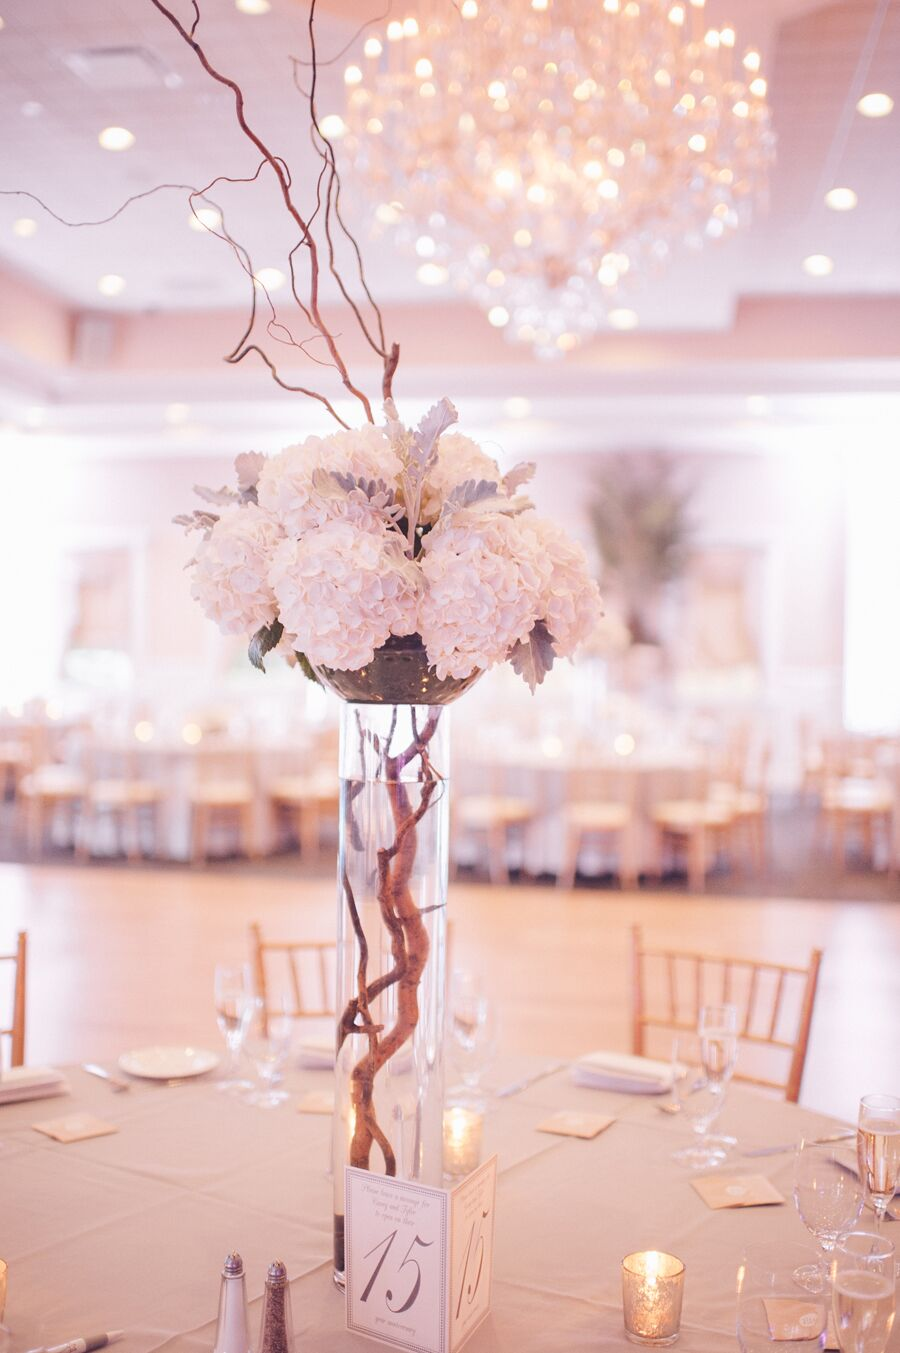 Elegant centerpieces with hydrangeas and branches